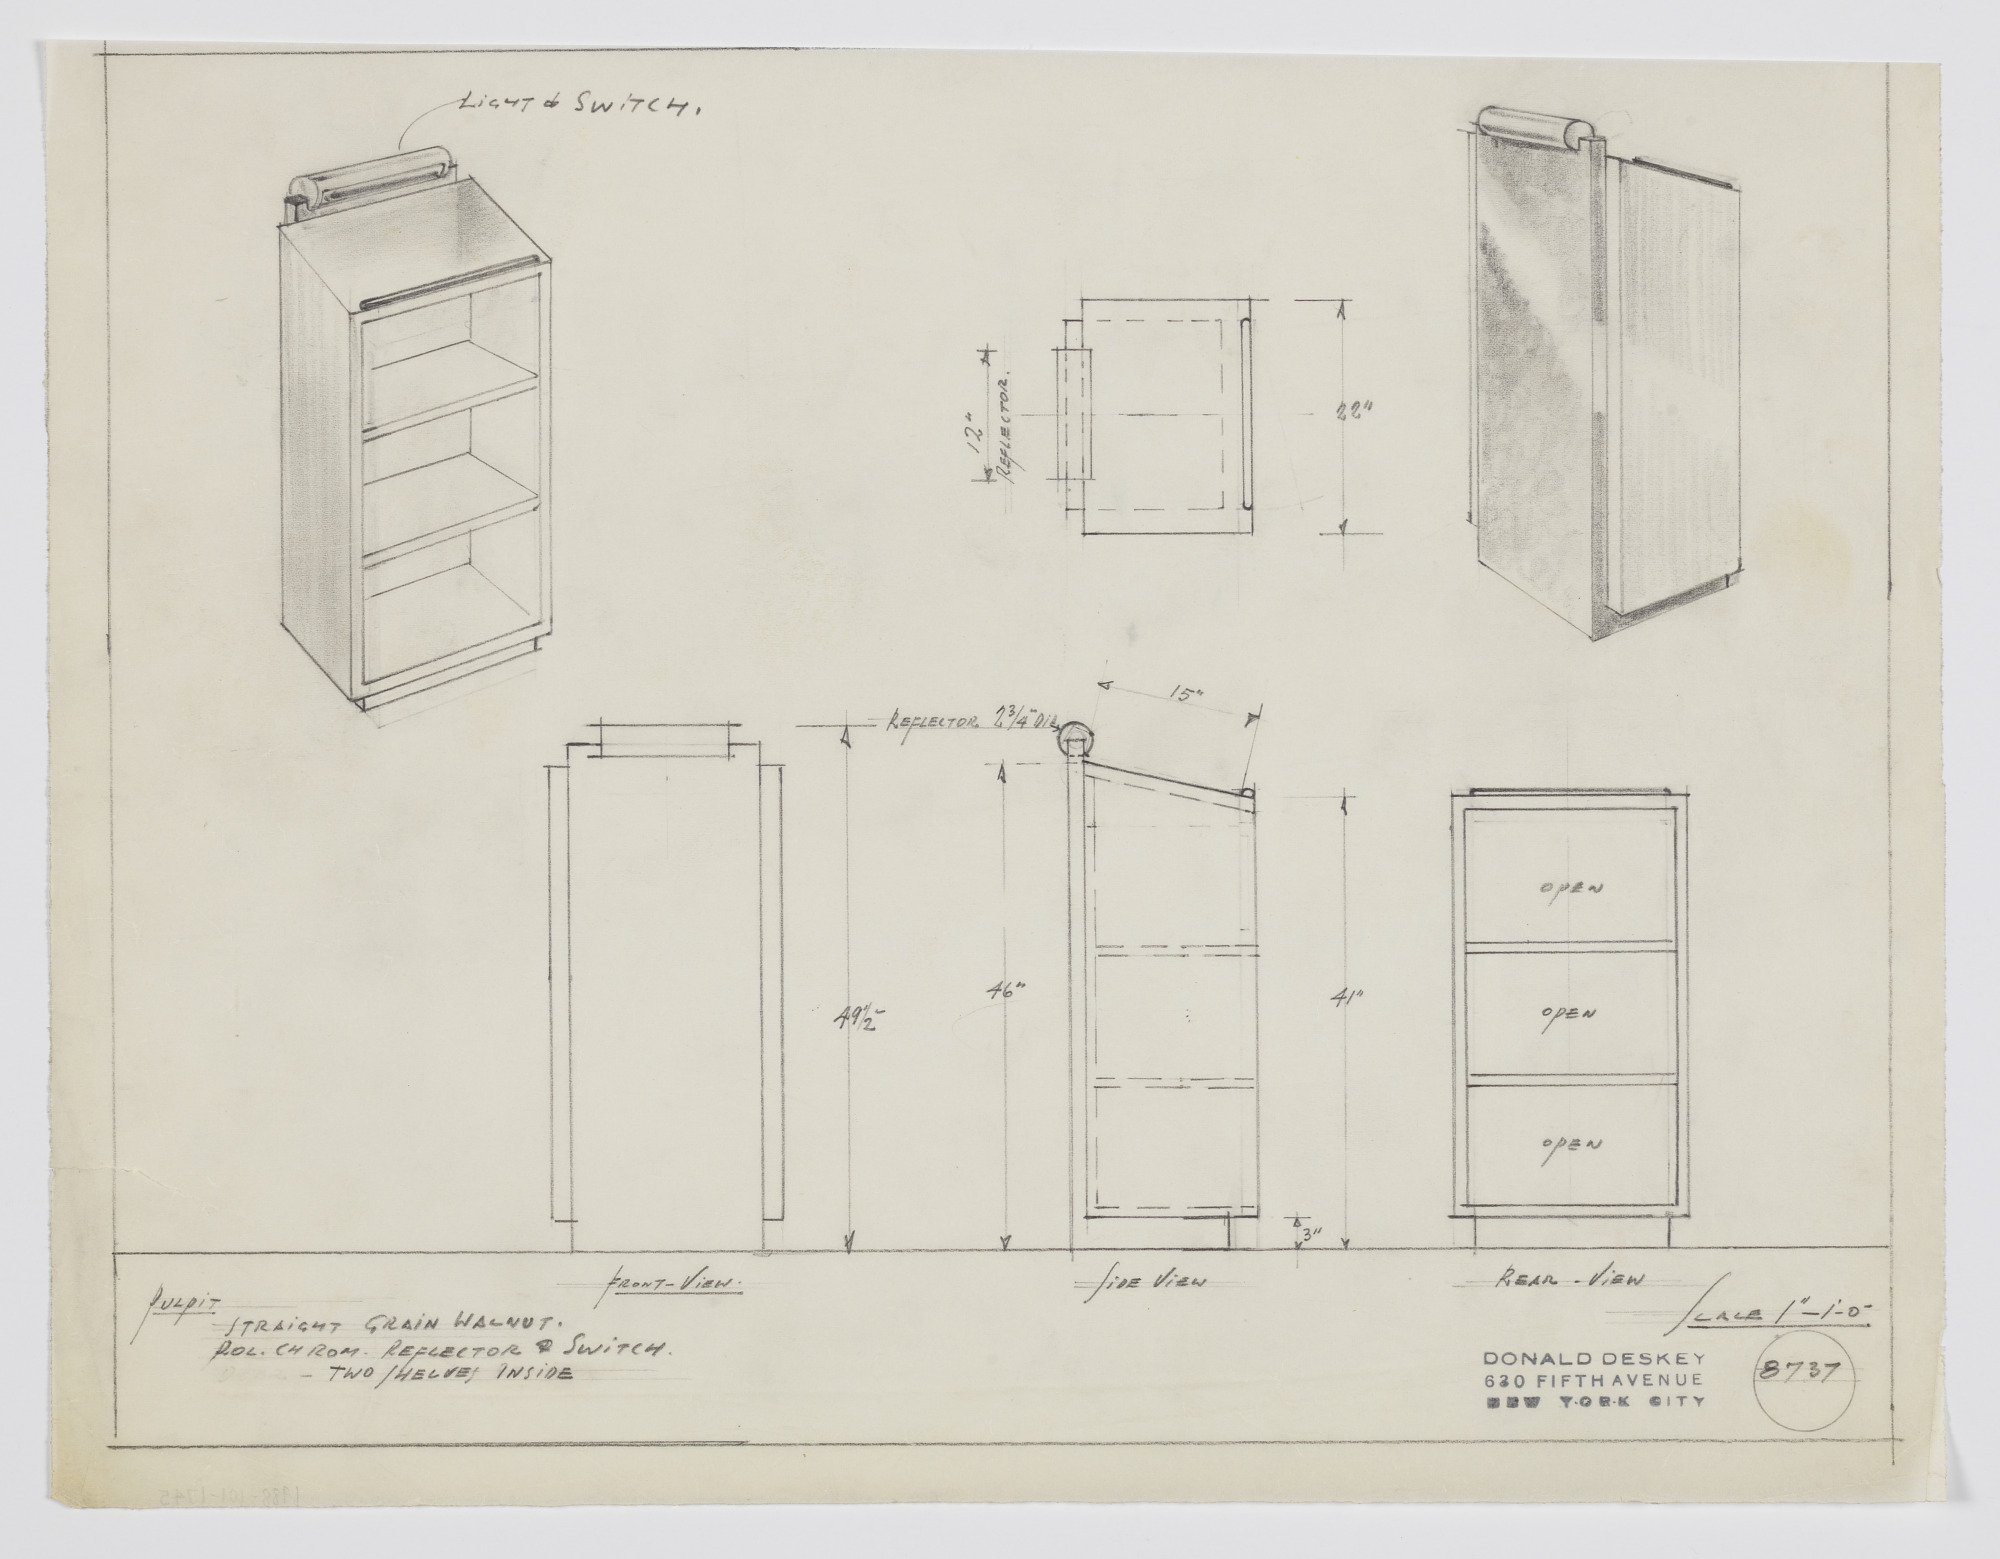 Design for Lectern with Open Shelves and Light